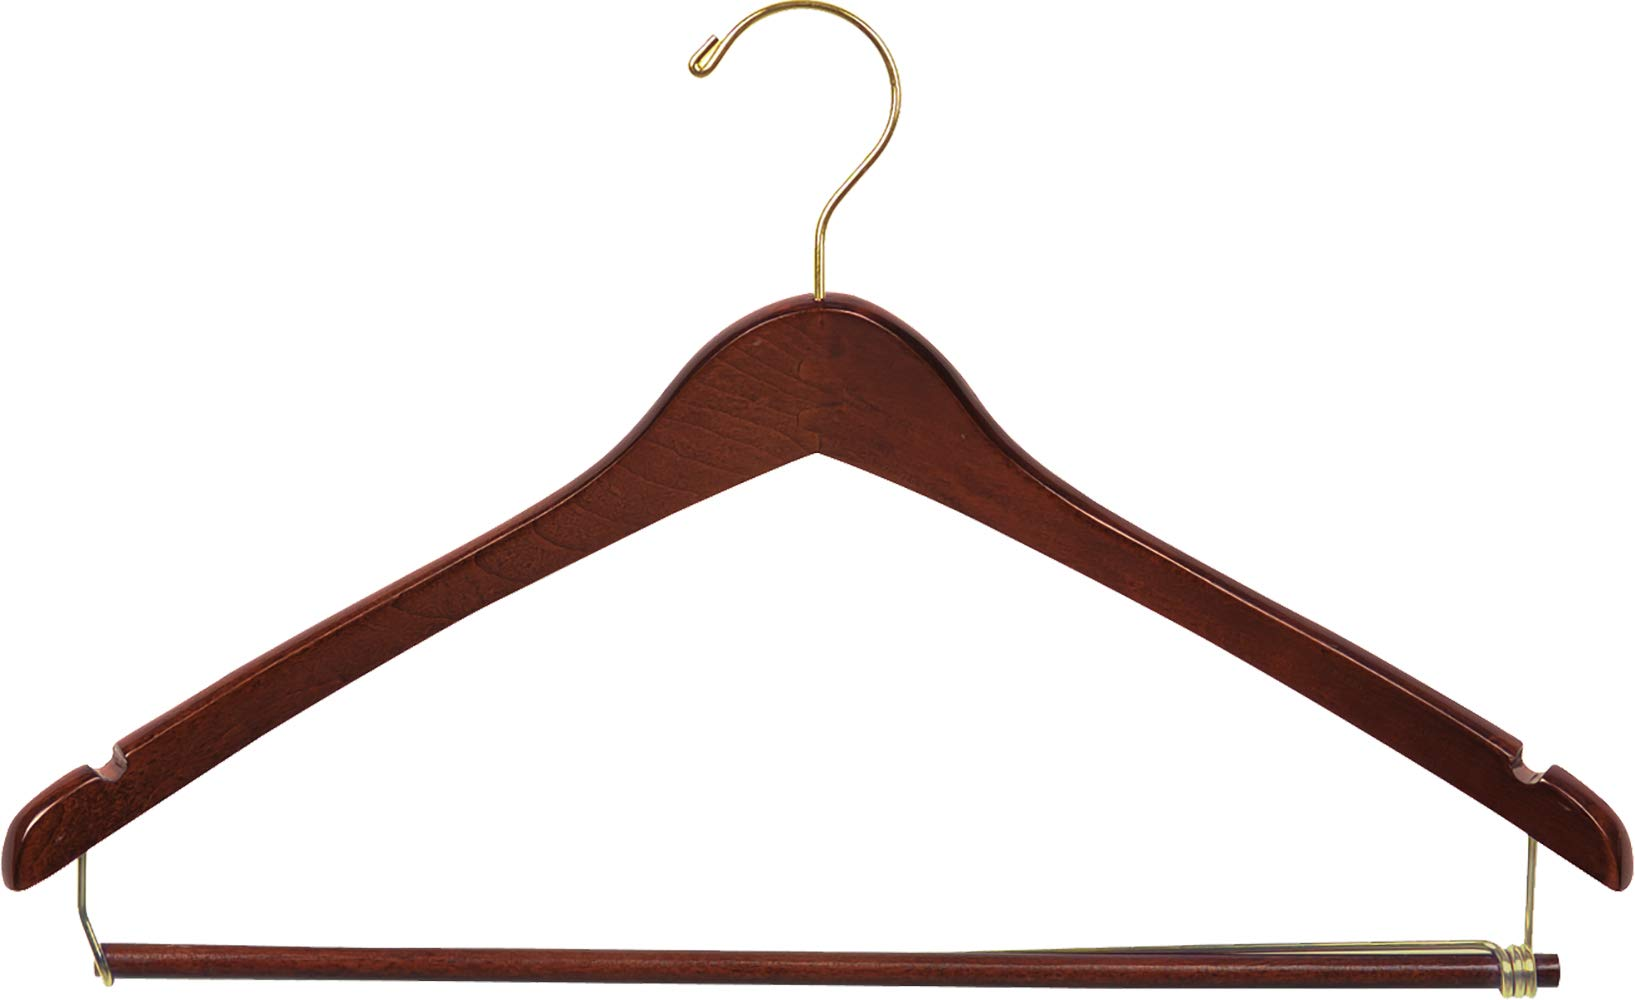 The Great American Hanger Company Curved Wood Suit Hanger w/Locking Bar, Box of 100 17 Inch Hangers w/Walnut Finish & Brass Swivel Hook & Notches for Shirt Dress or Pants